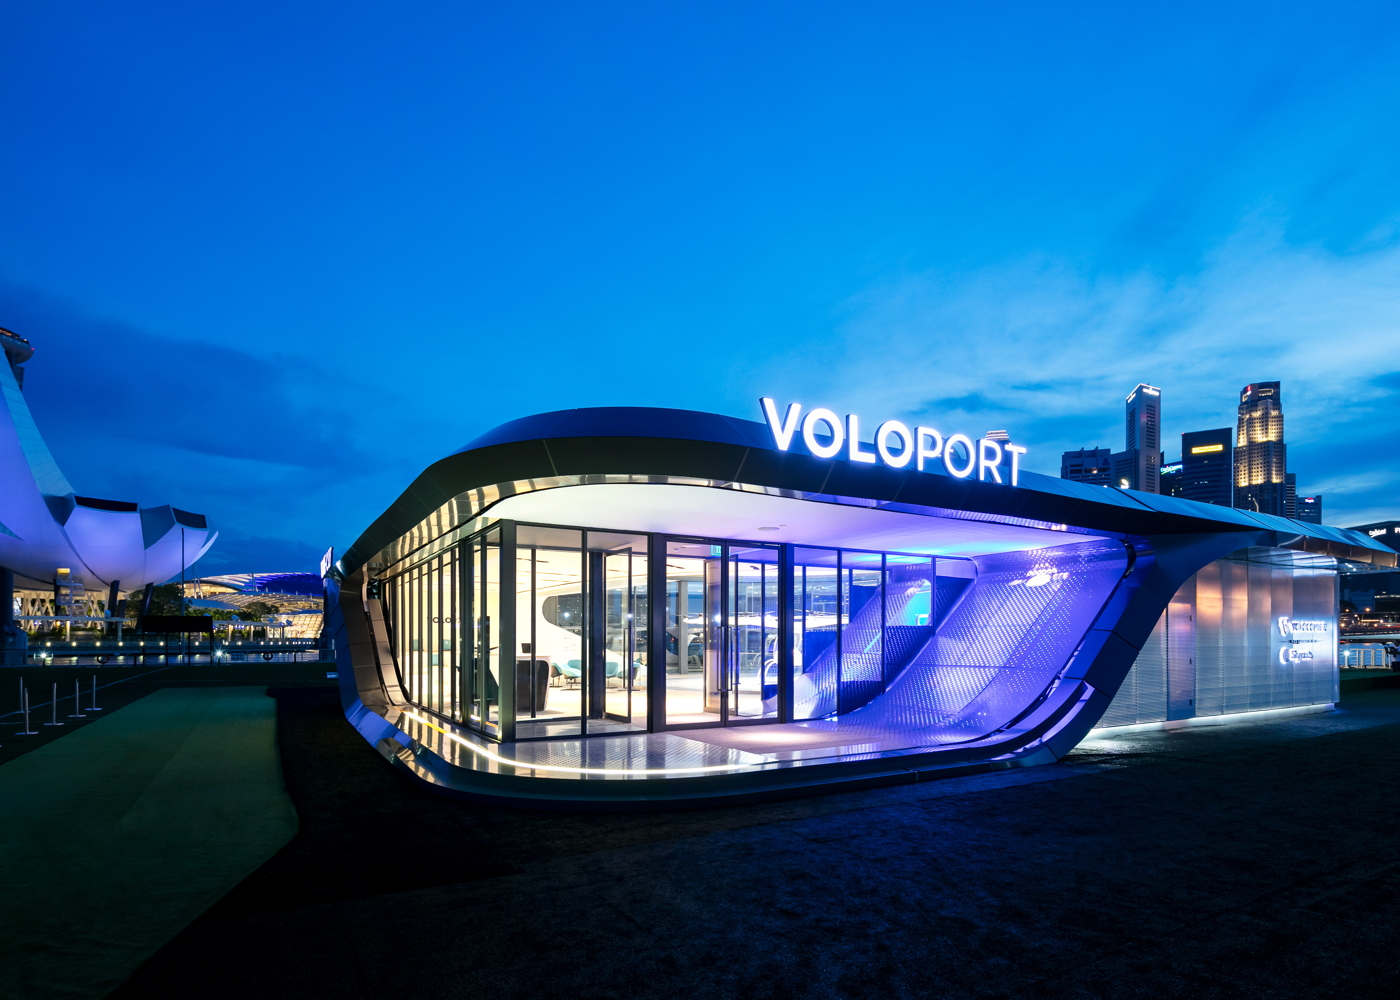 VoloPort Singapore